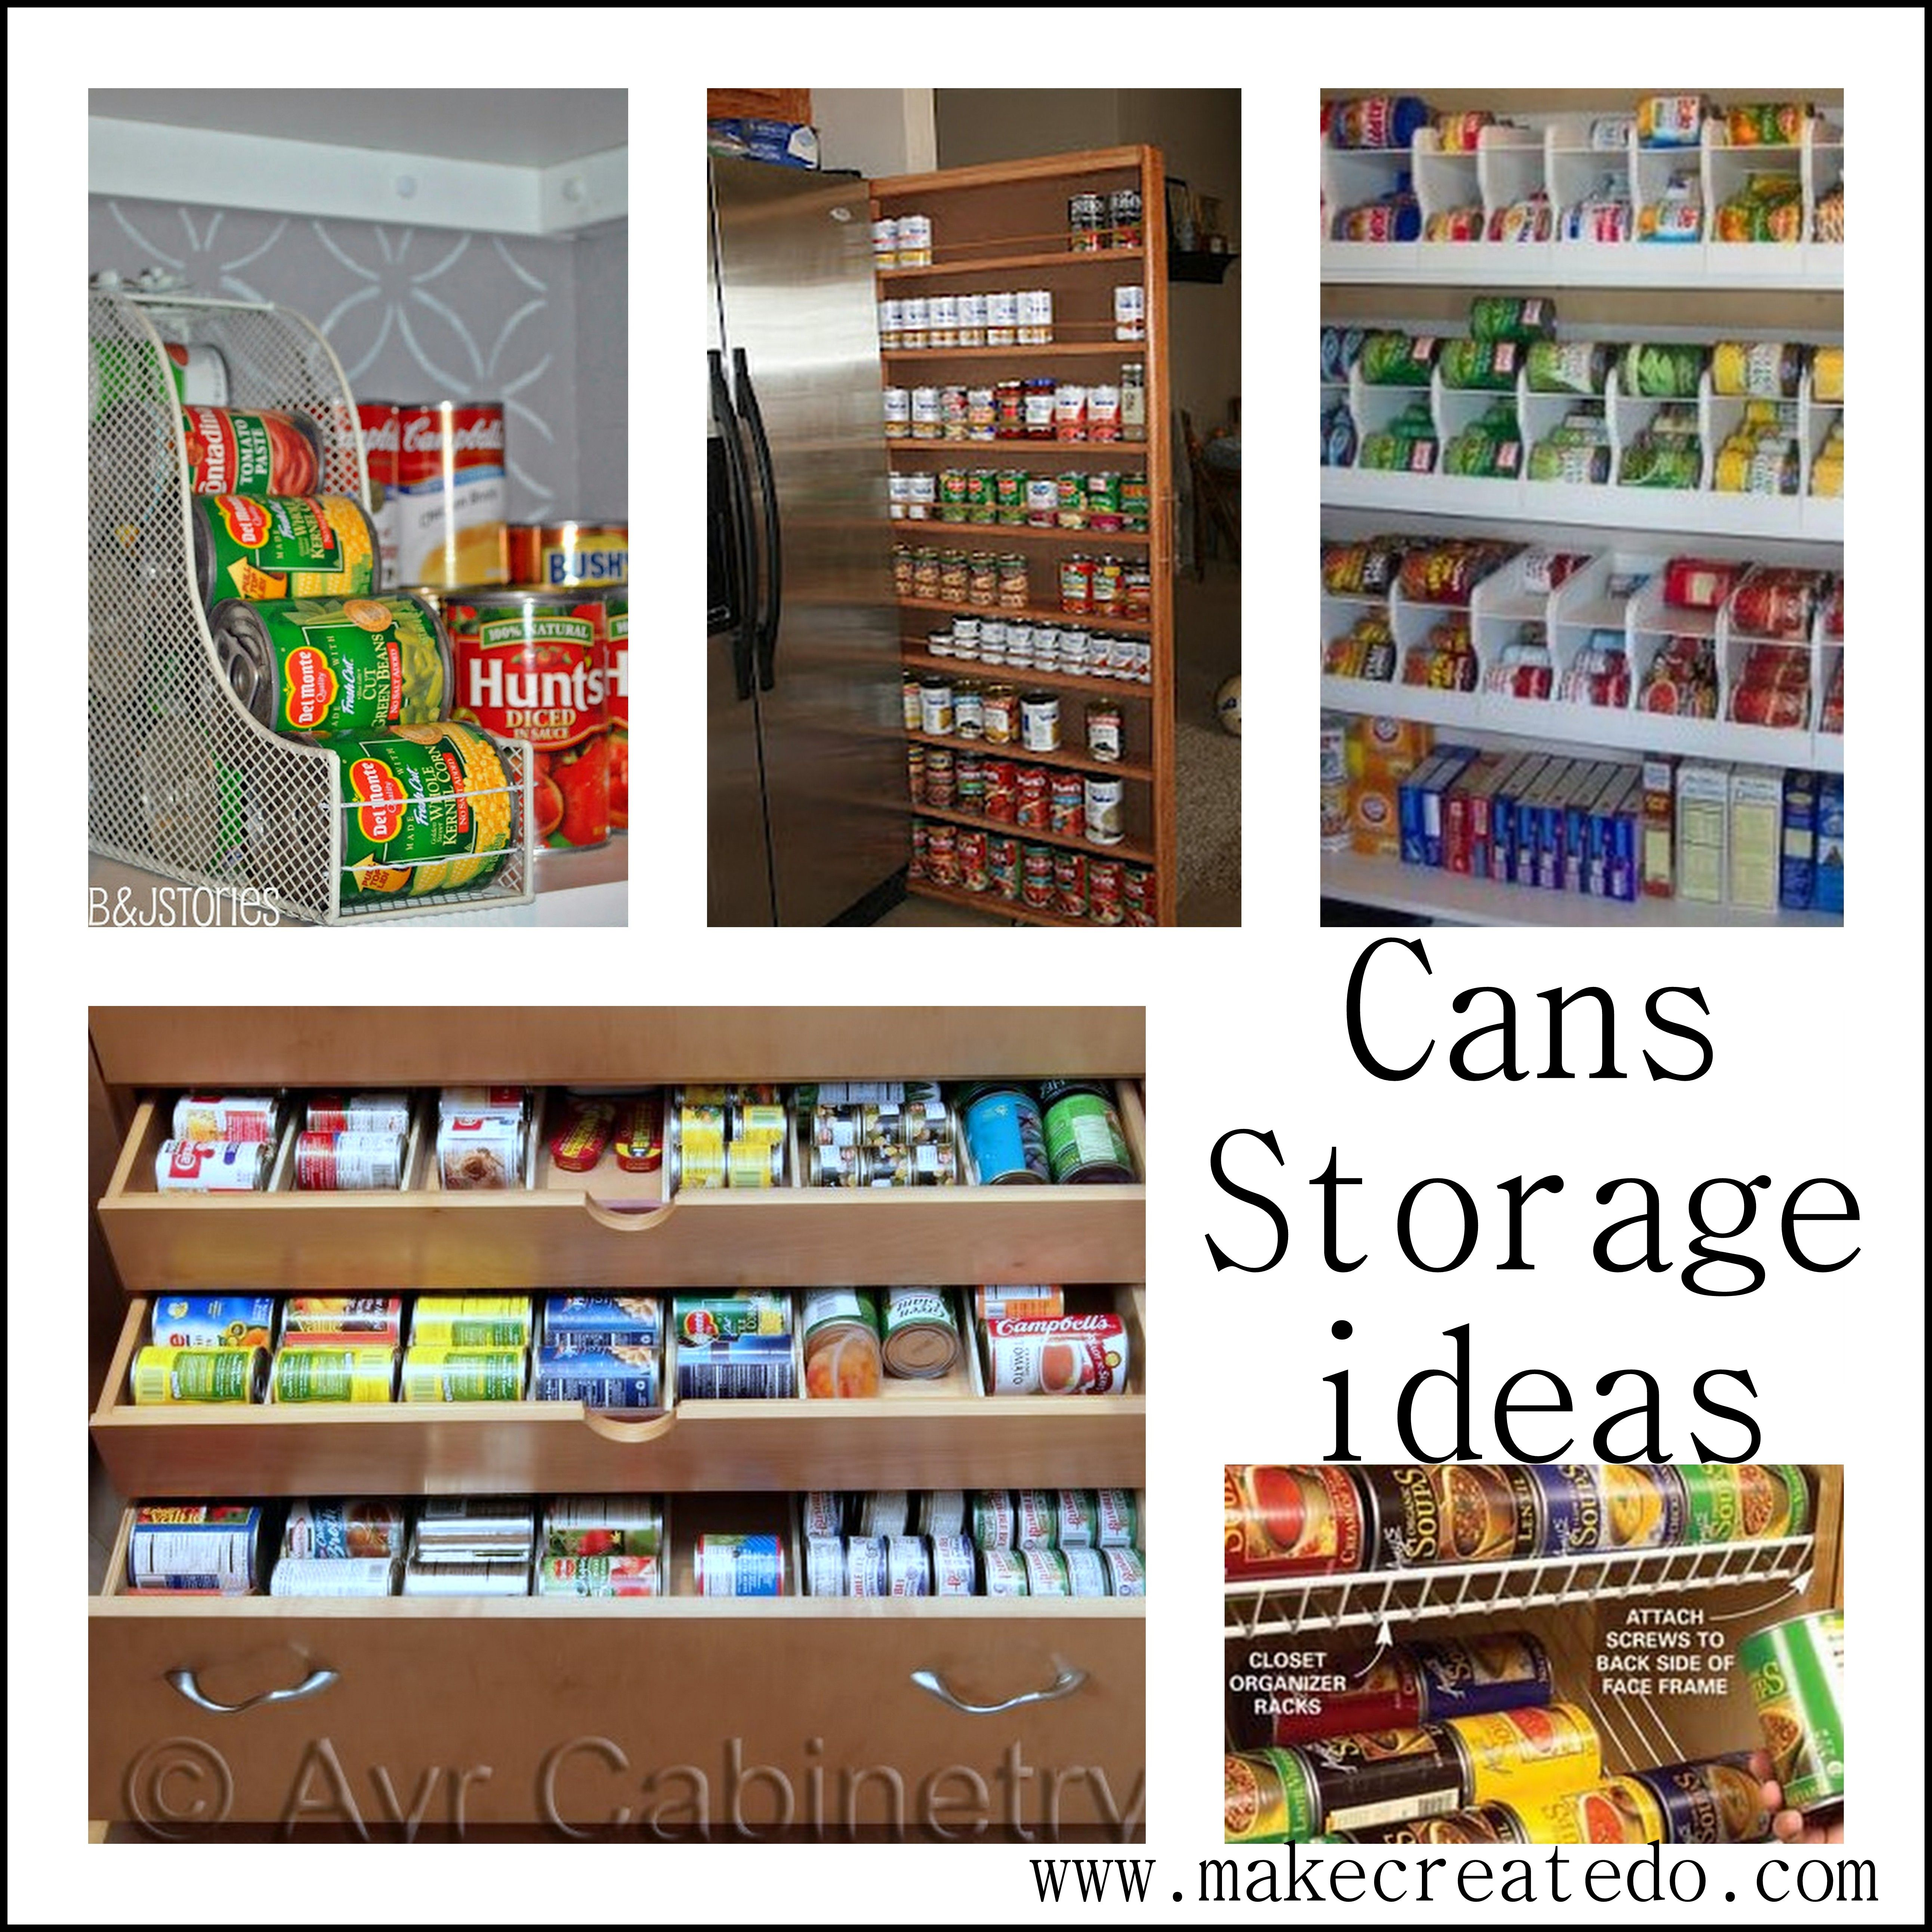 Pantry Can Storage Ideas: Food Cans Storage Ideas In The Pantry